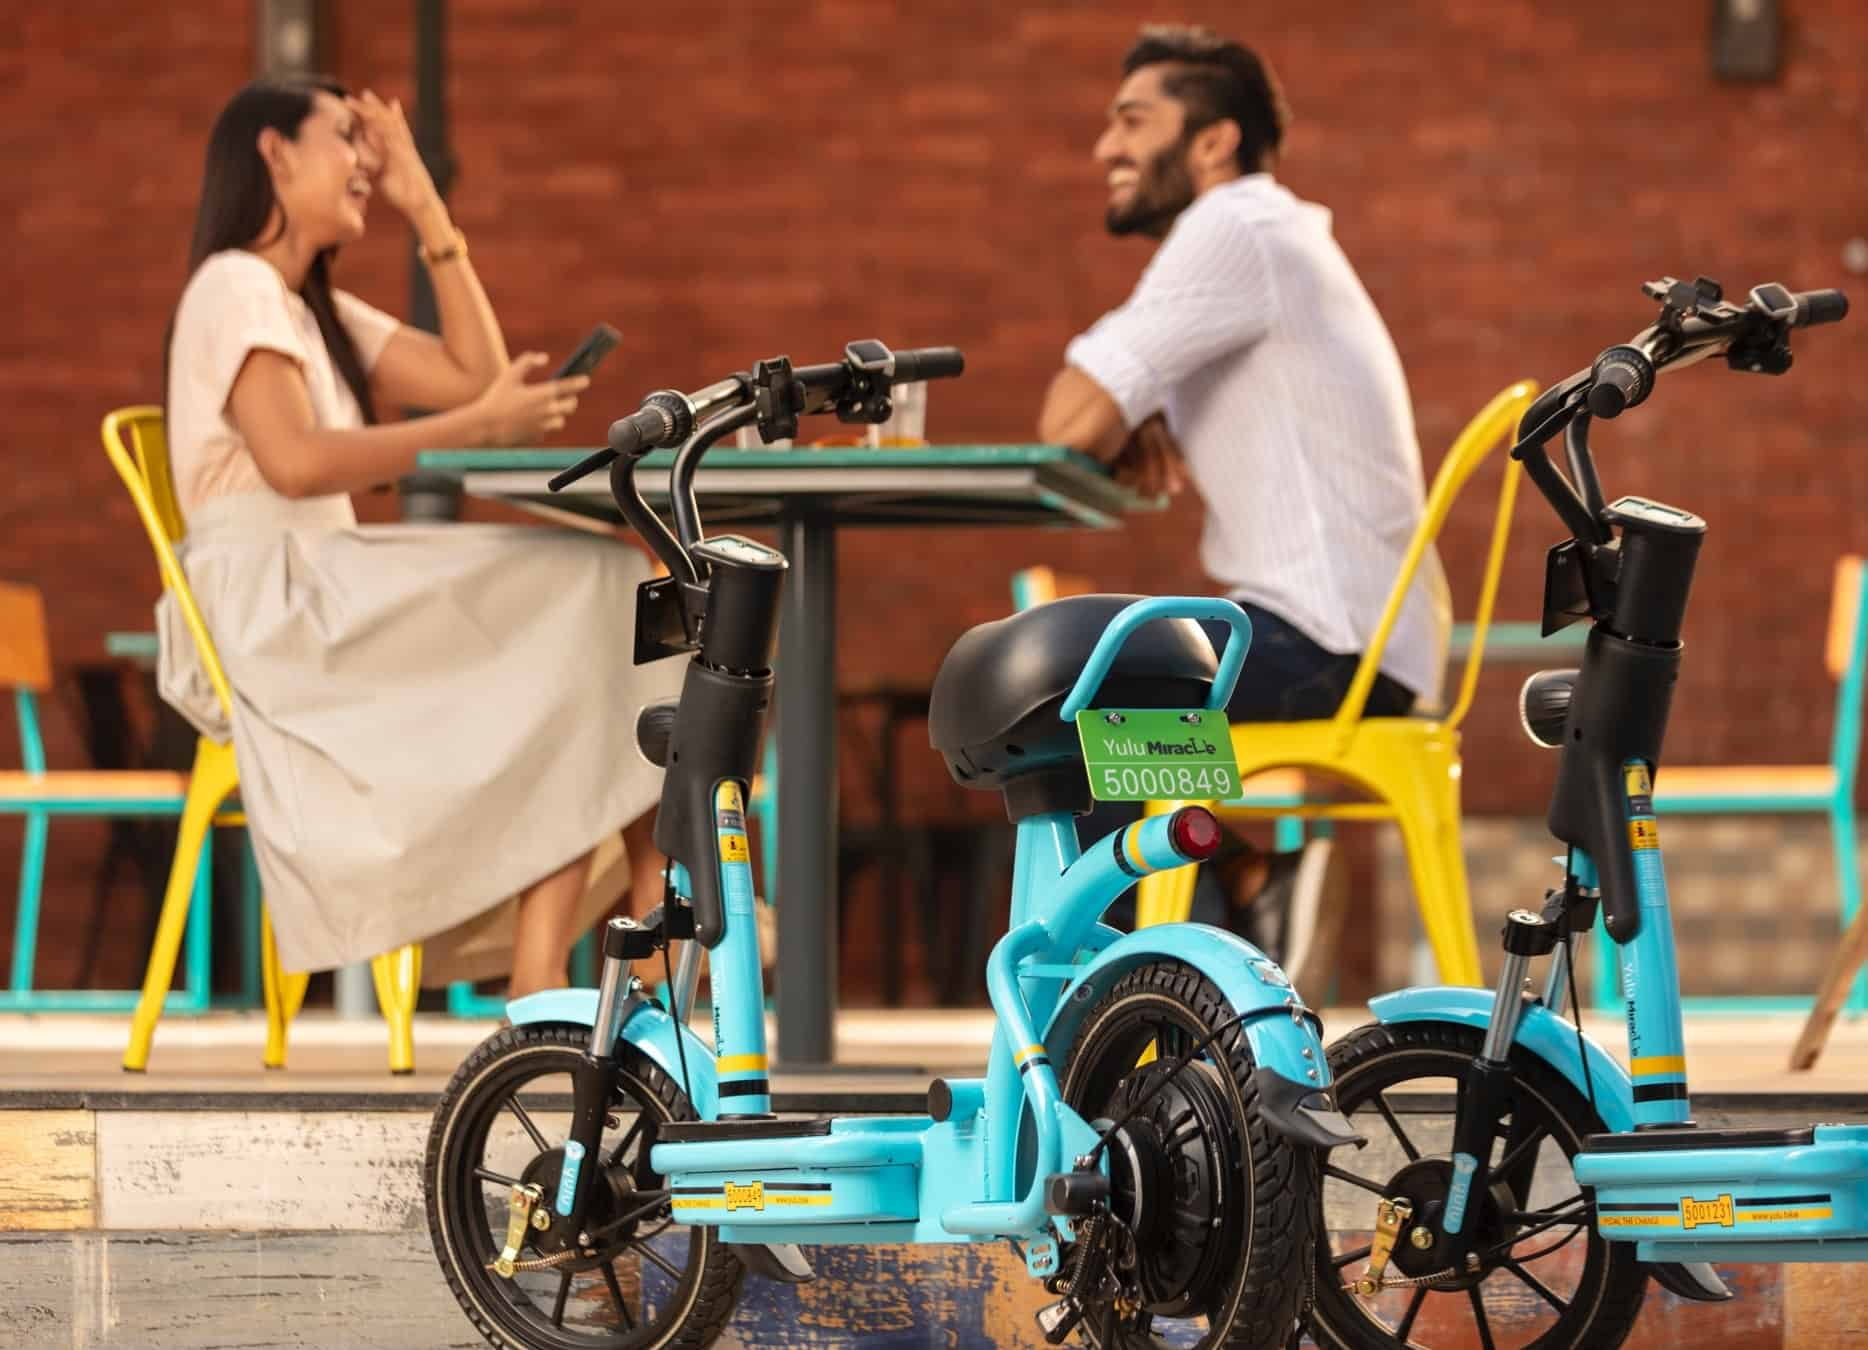 Yulu miracle electric bike with two people having dinner